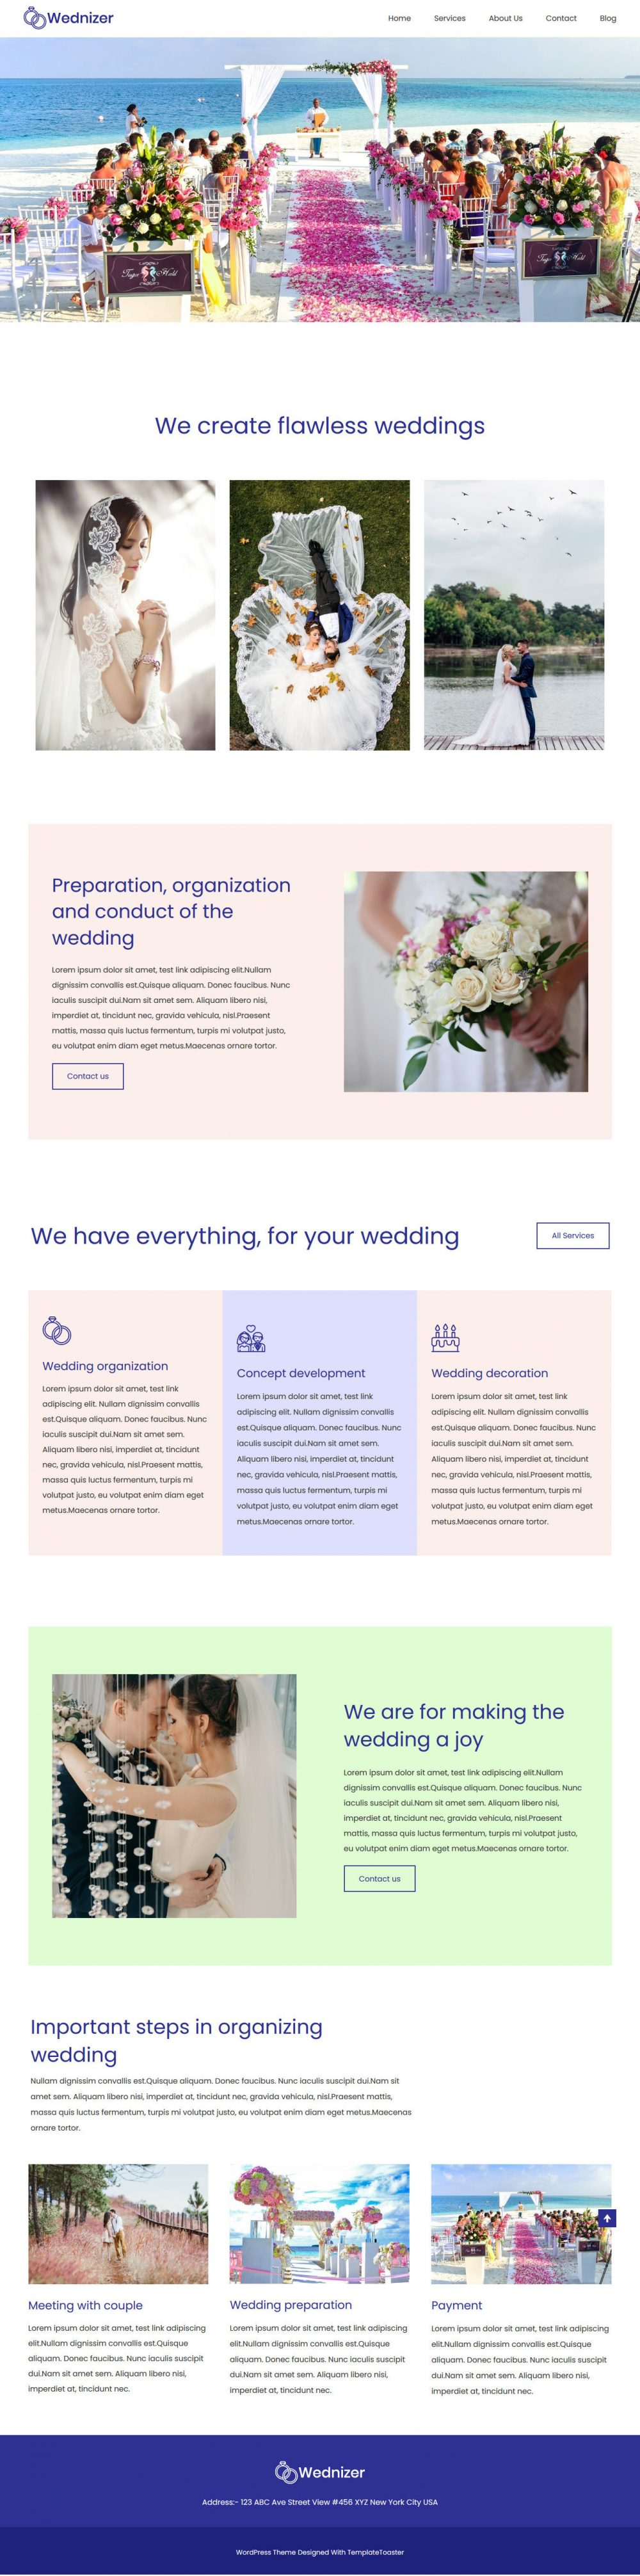 wednizer wedding organizer agency joomla template